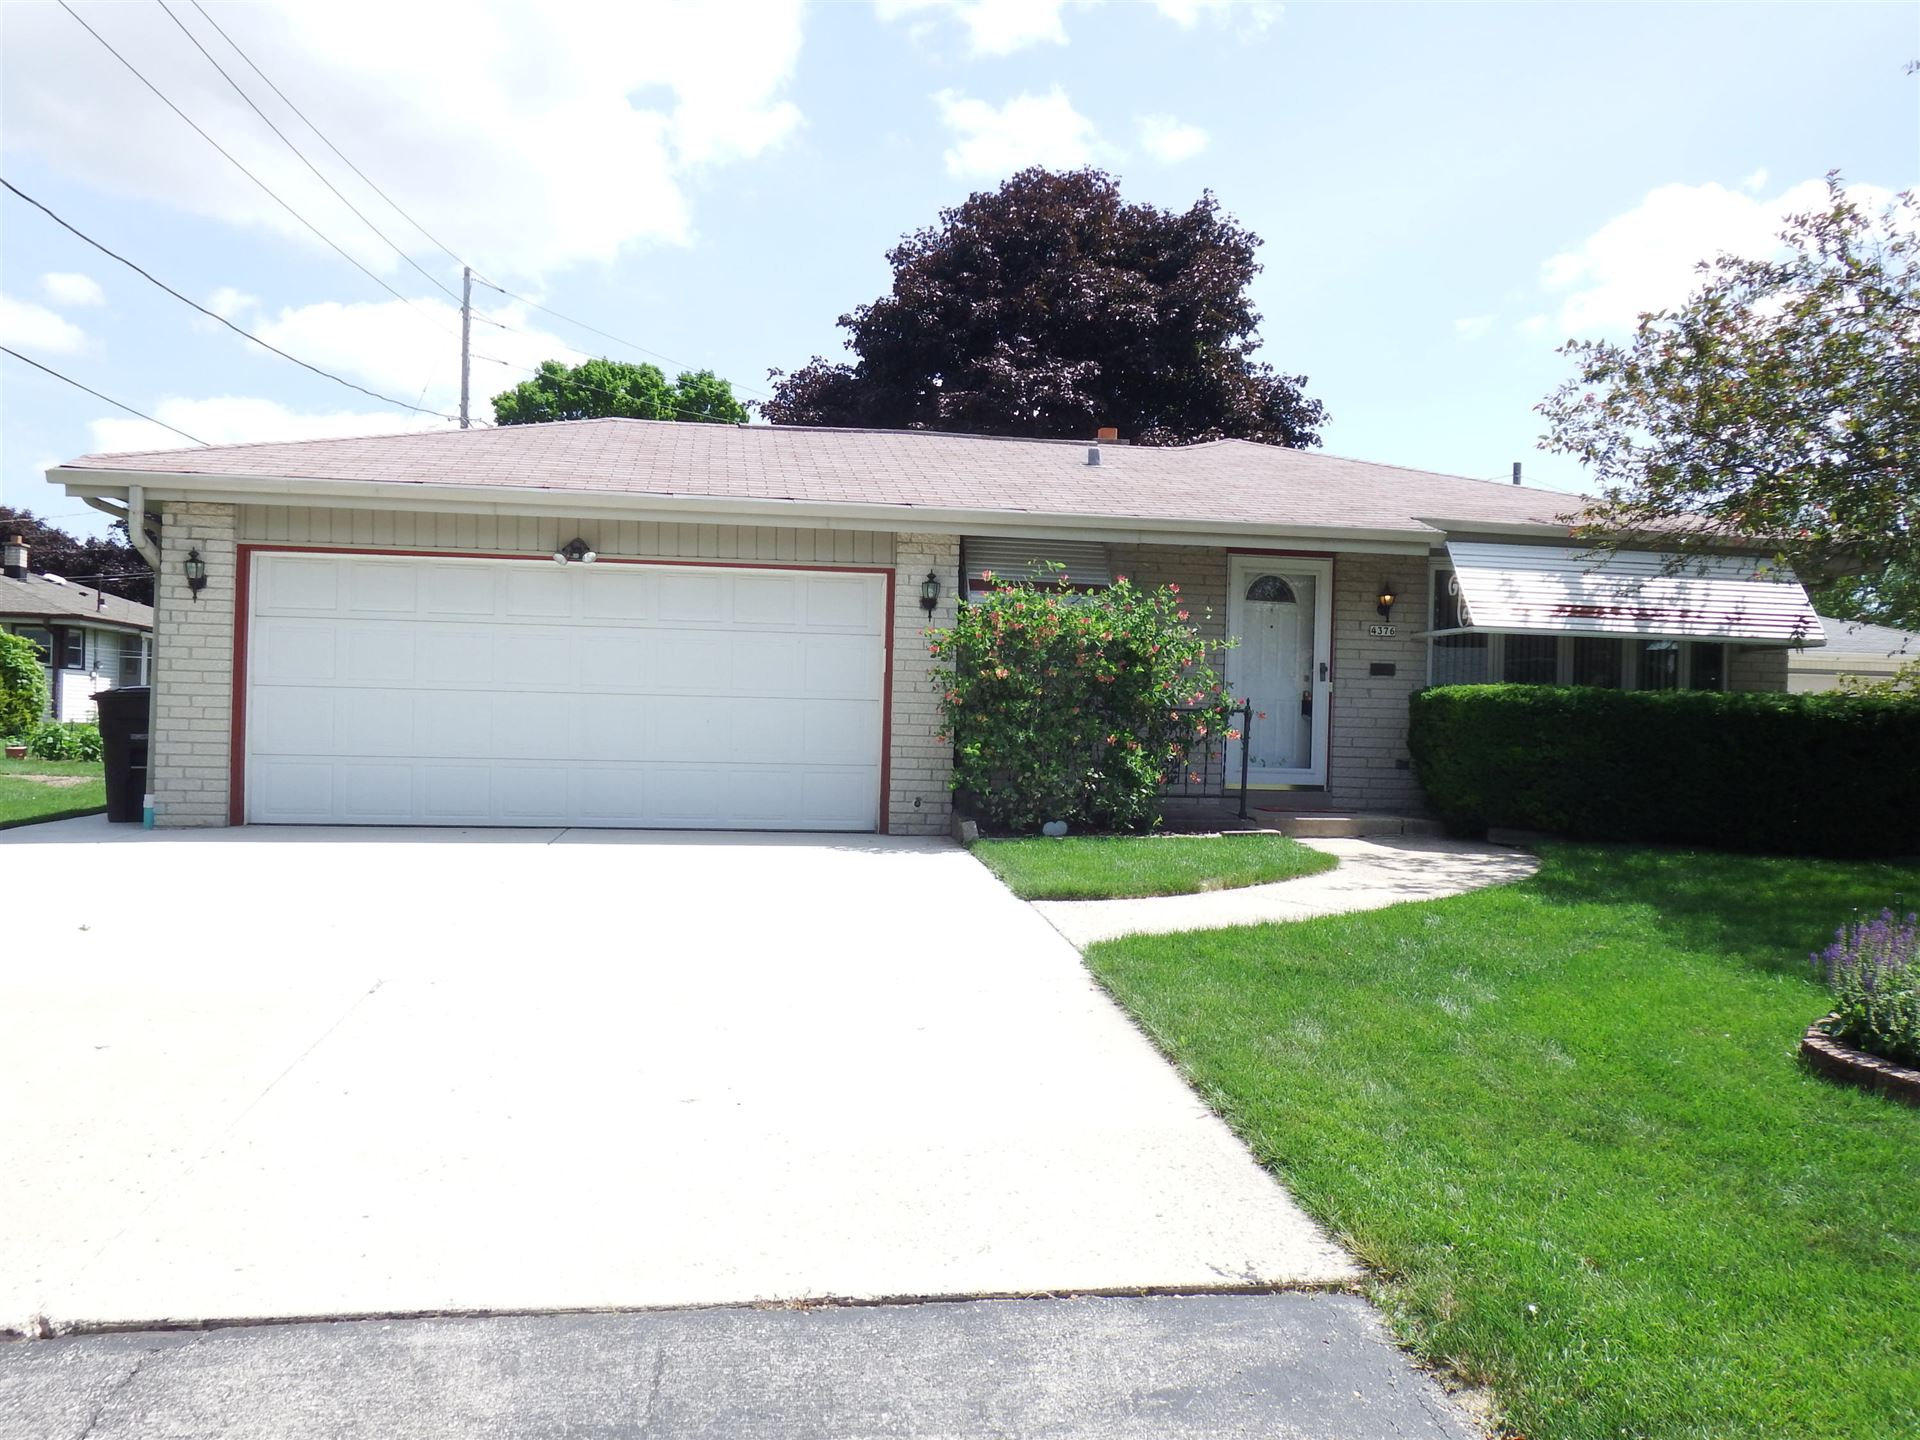 4376 S Honey Creek Dr, Greenfield, WI 53220 - #: 1699855